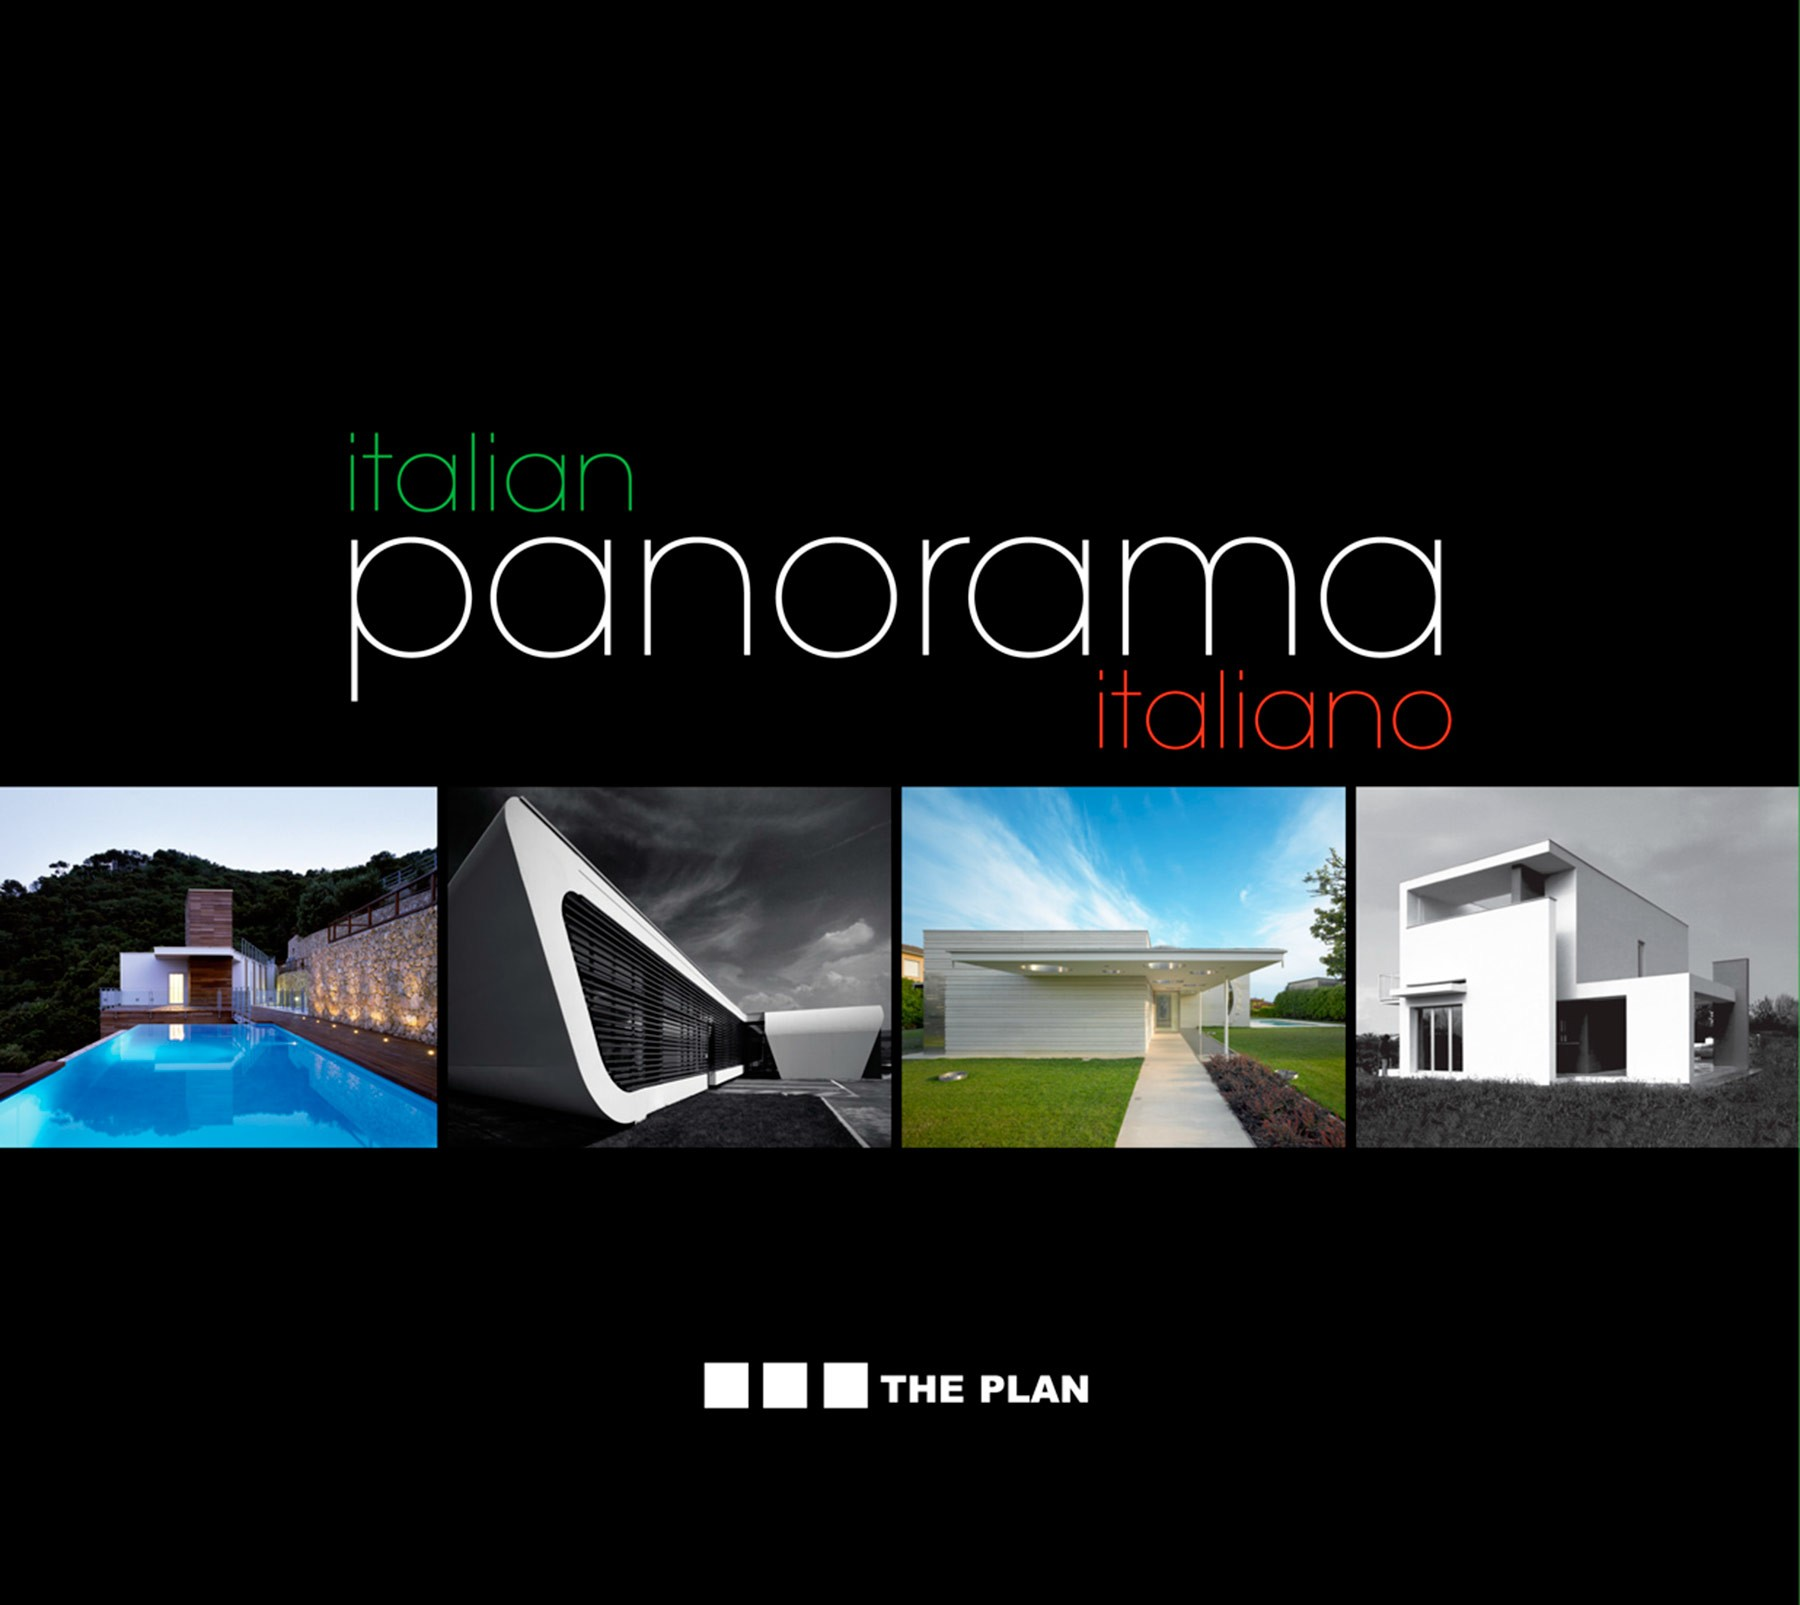 Panorama italiano, The Plan